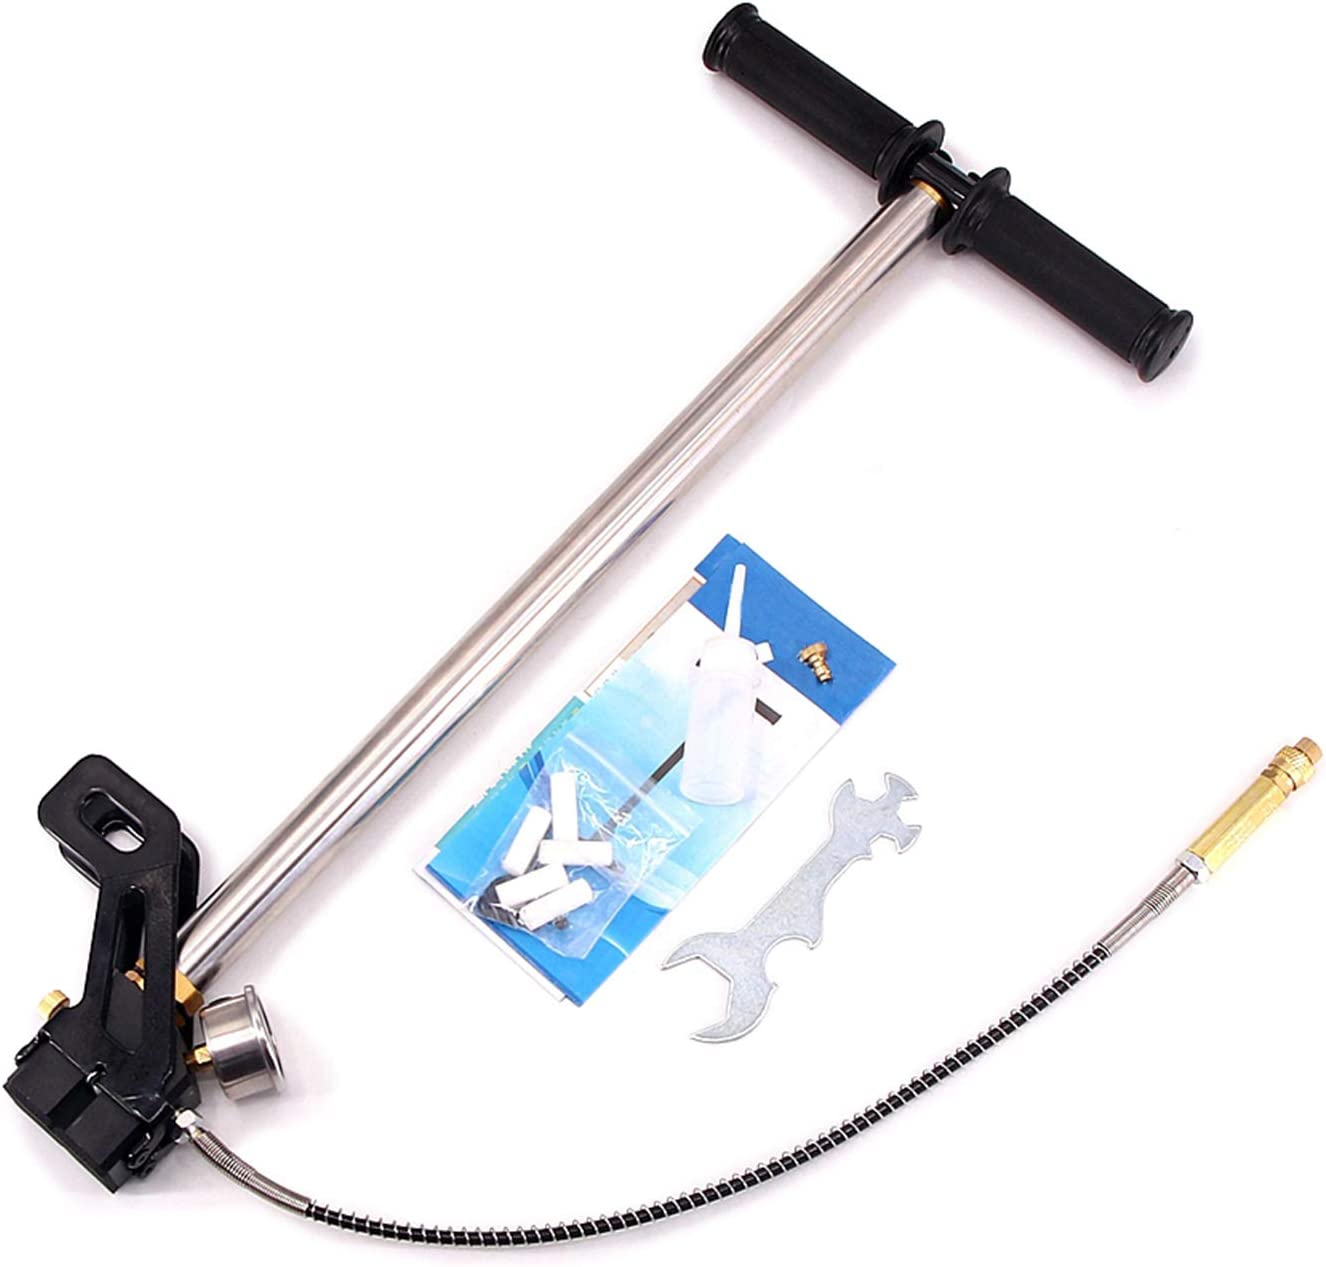 4500PSI PCP Pump Airgun High Pressure Pre-Charged Pneumatic Charger New